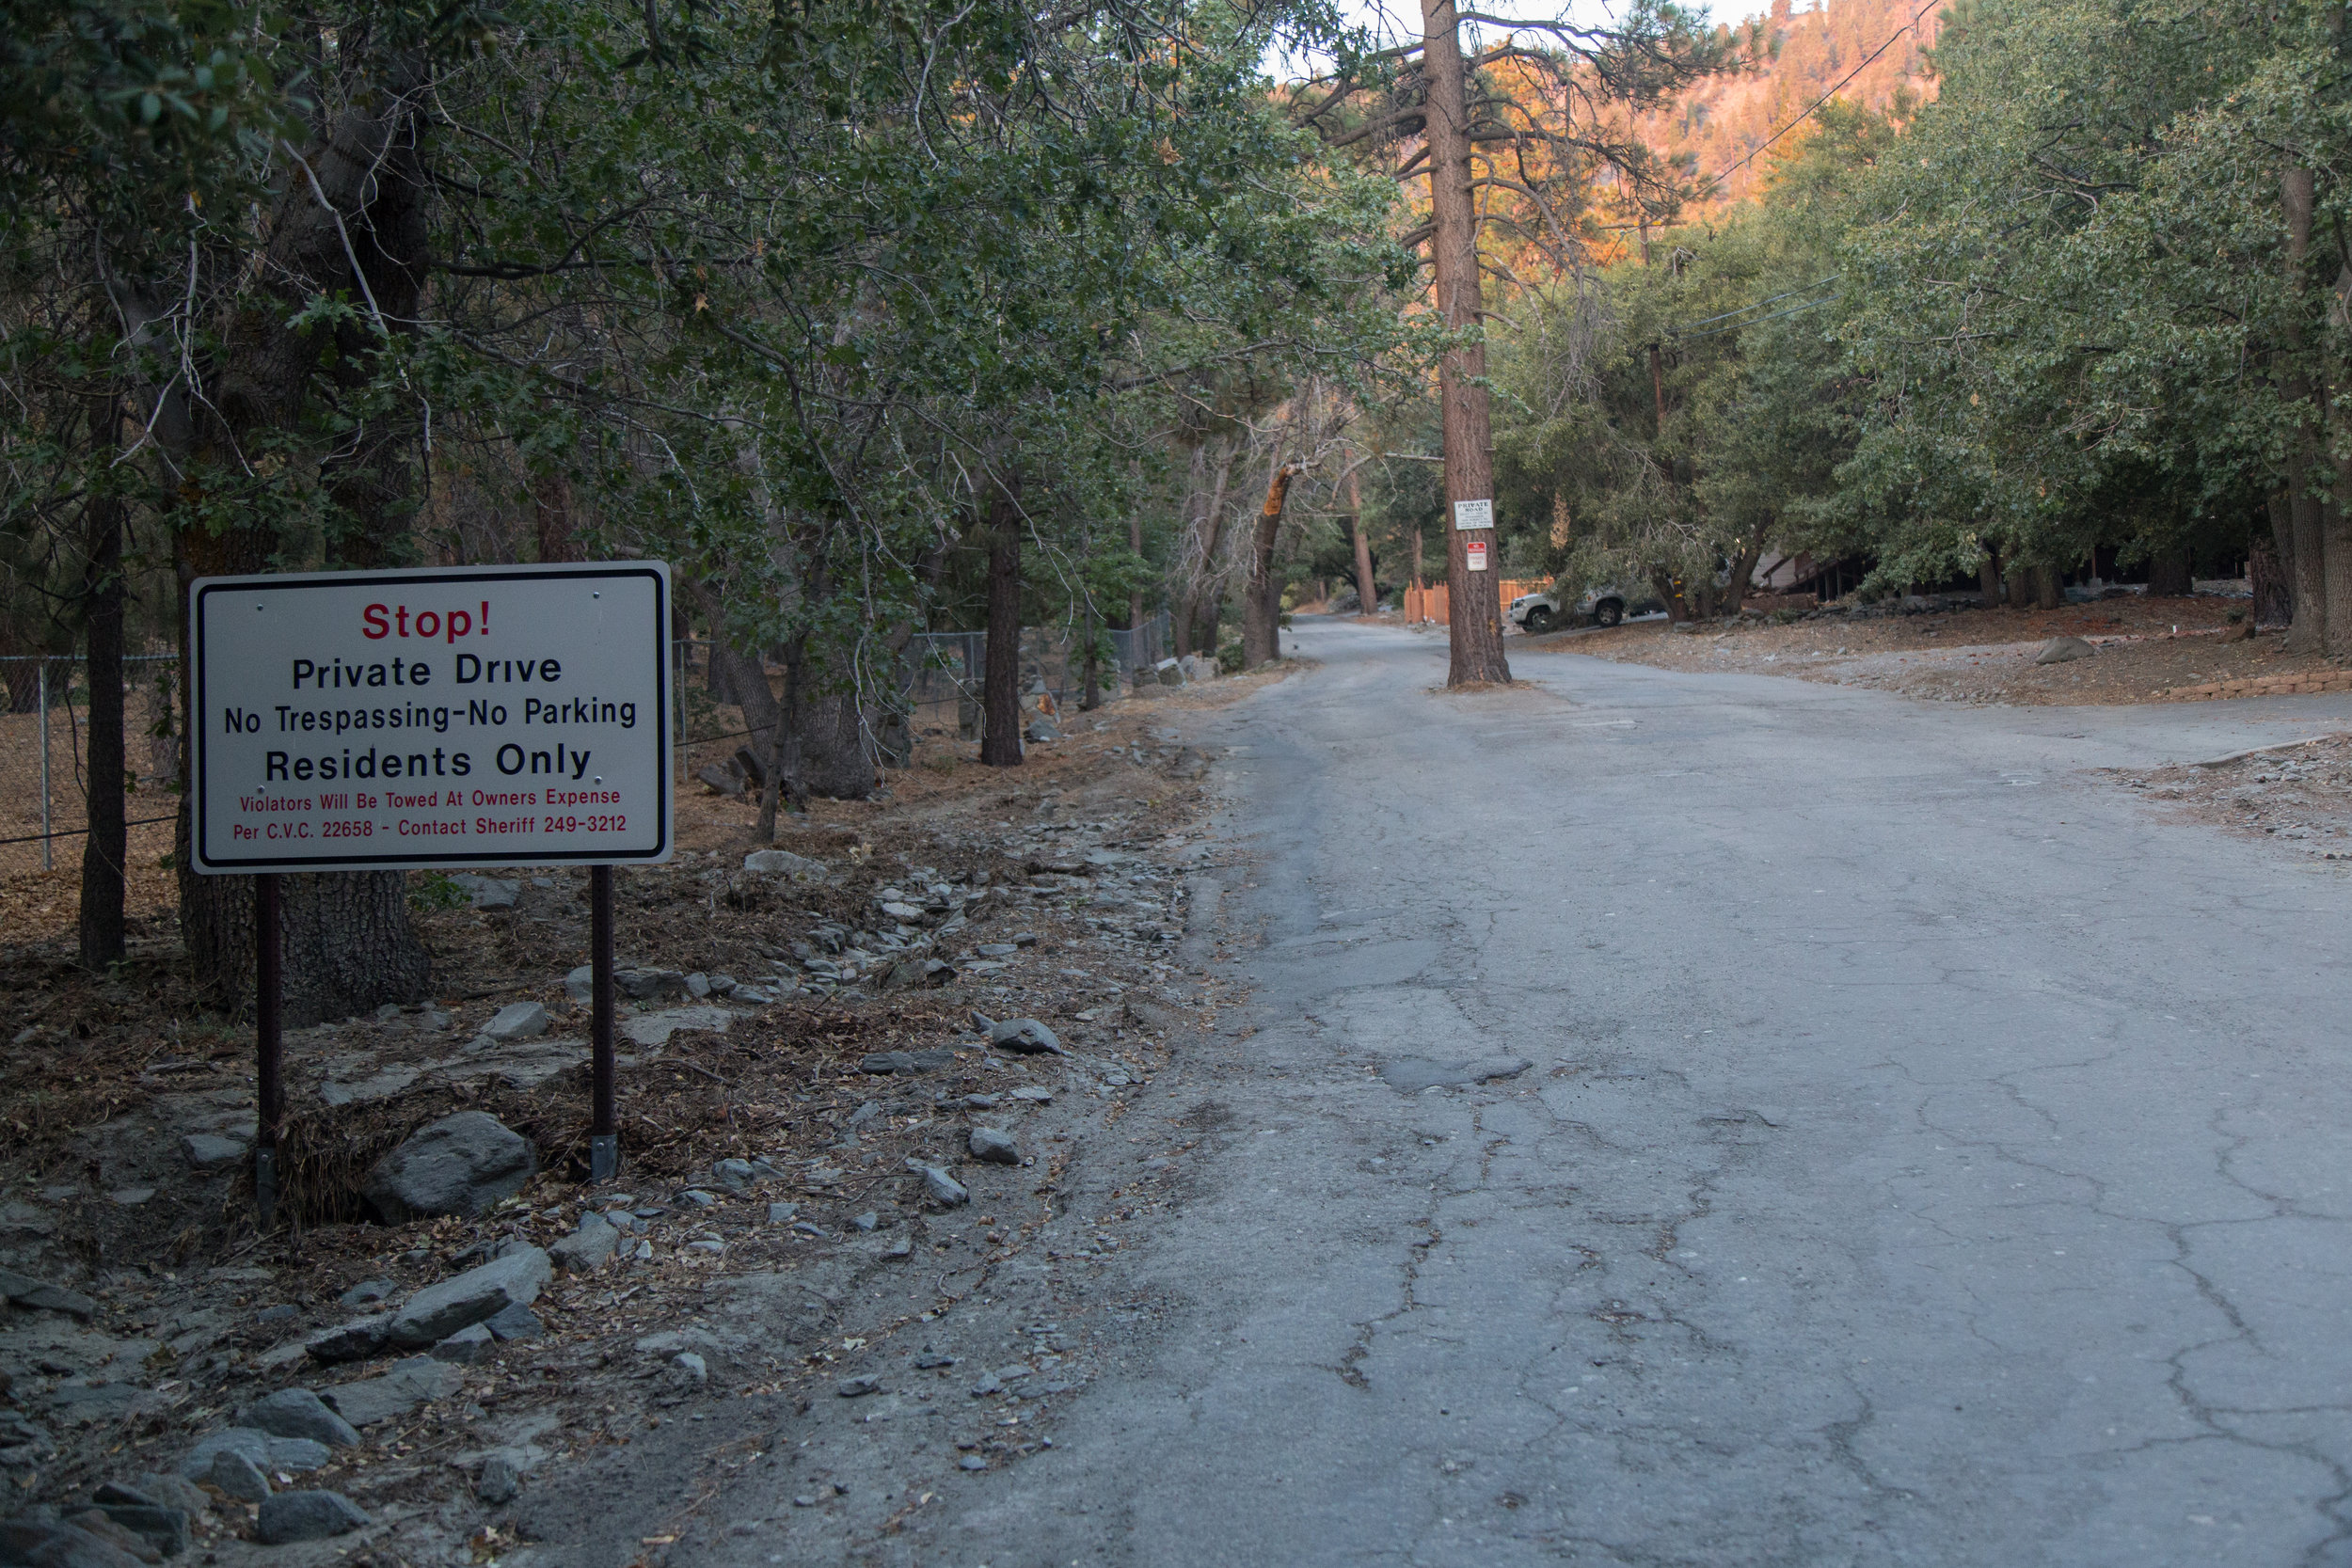 Begin the trek by hiking up the steep Acorn Drive for about 3/4 miles.  Do not park past the sign.  This is private property.  There is a turn out just before the sign on the right hand side of the road that fits two cars.  Display your adventure pass and be on your way while being respectful of the residents.